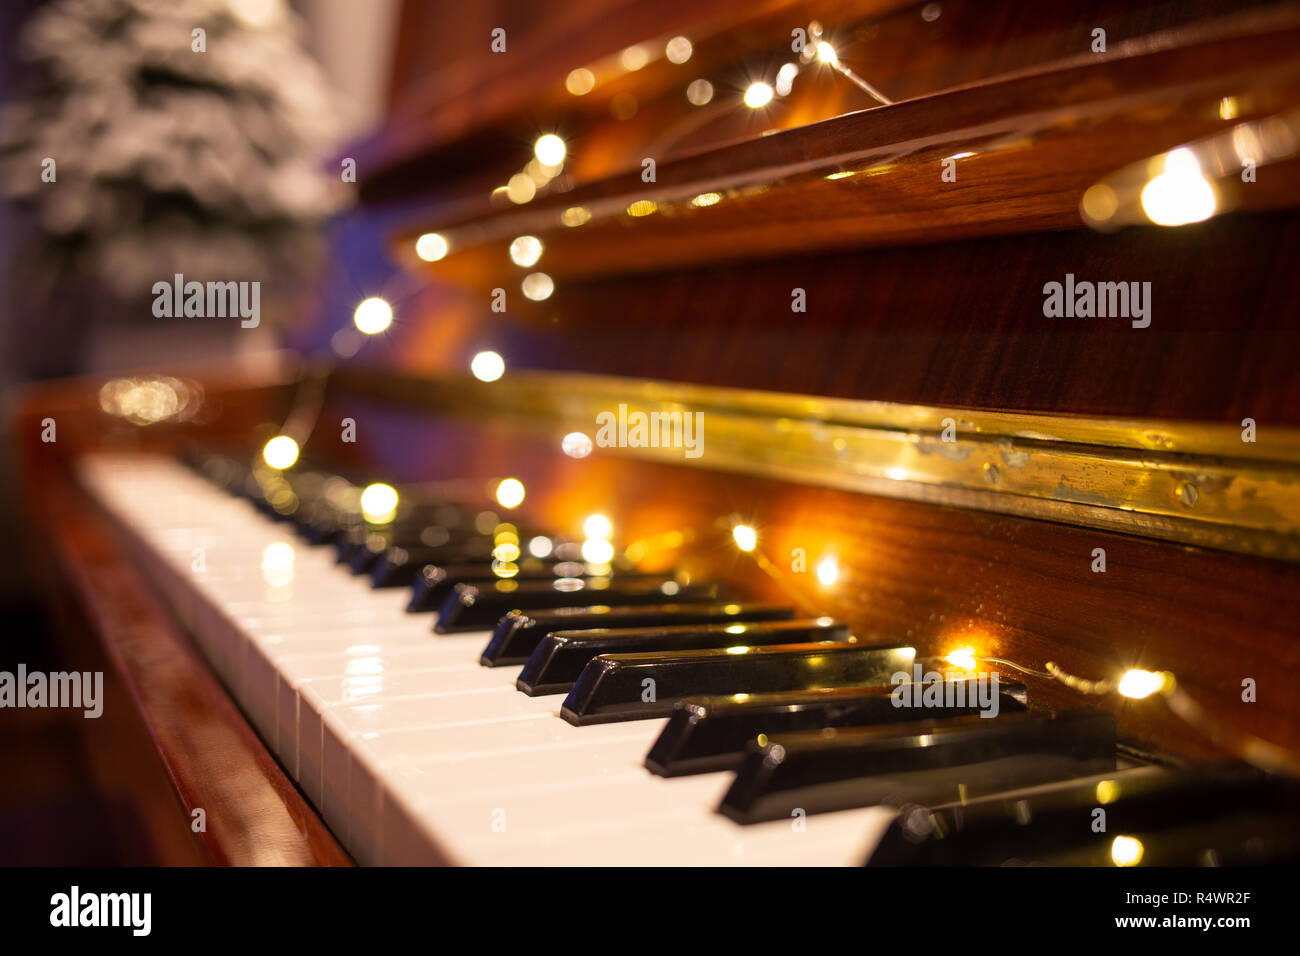 Piano keyboard illuminated with christmas lights  Romantic